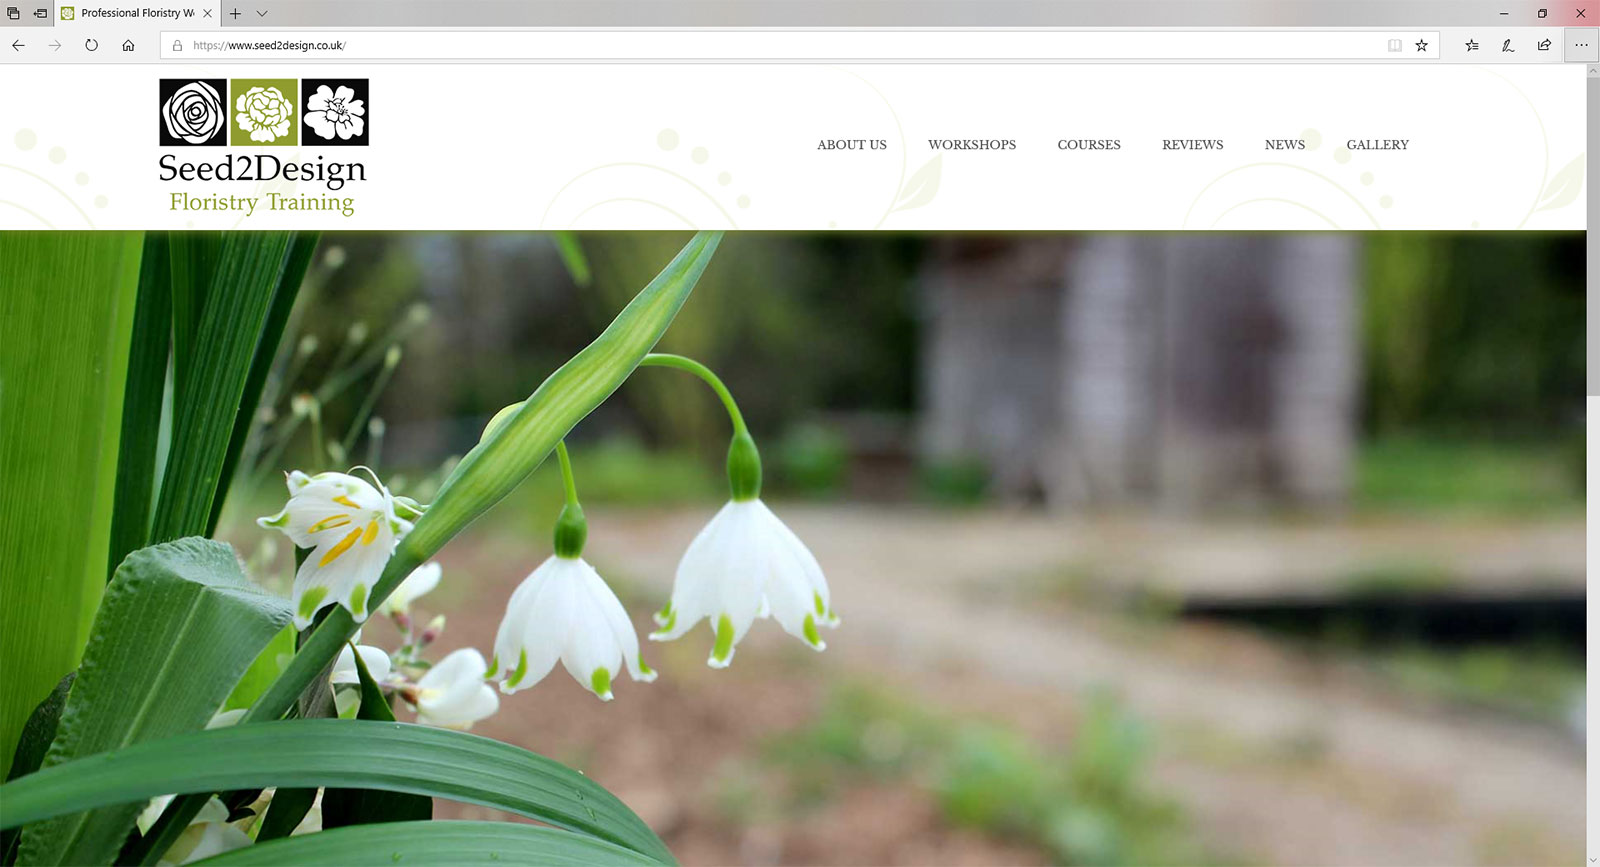 seed2design website design branding project